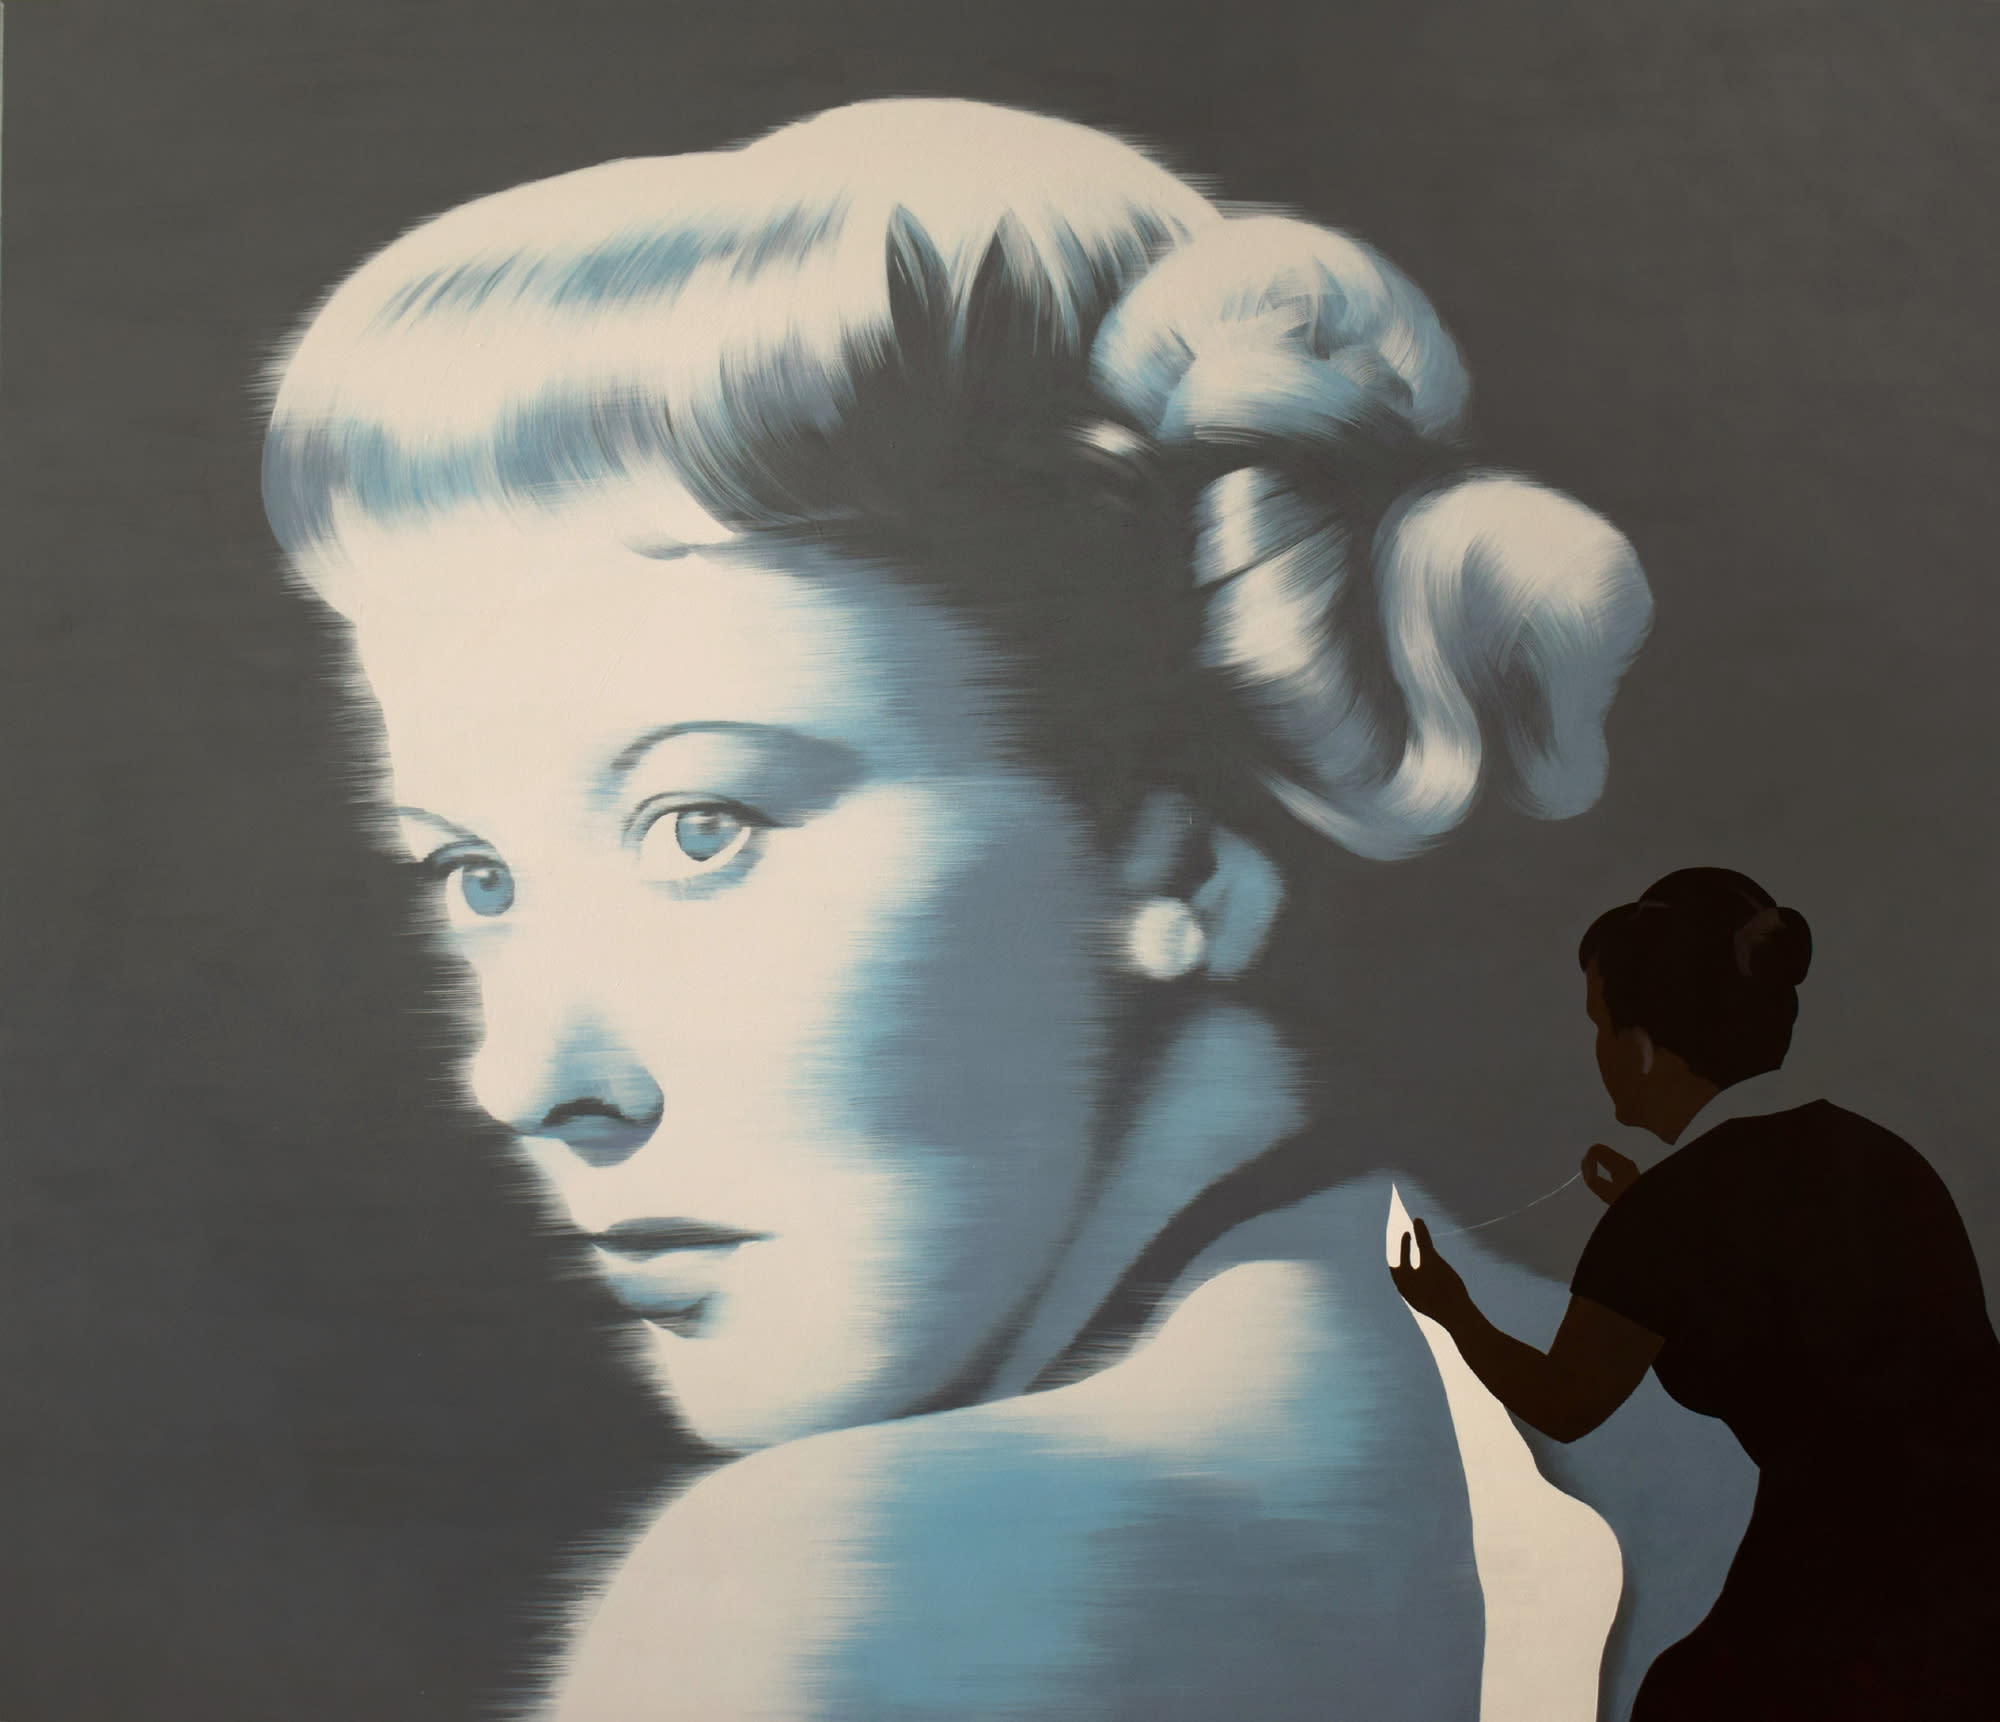 "<span class=""link fancybox-details-link""><a href=""/artists/54-jarek-puczel/works/582-jarek-puczel-the-idol/"">View Detail Page</a></span><div class=""artist""><strong>Jarek Puczel</strong></div> <div class=""title""><em>The Idol</em></div> <div class=""medium"">Acrylic on Canvas</div> <div class=""dimensions"">47 x 55 inches</div>"